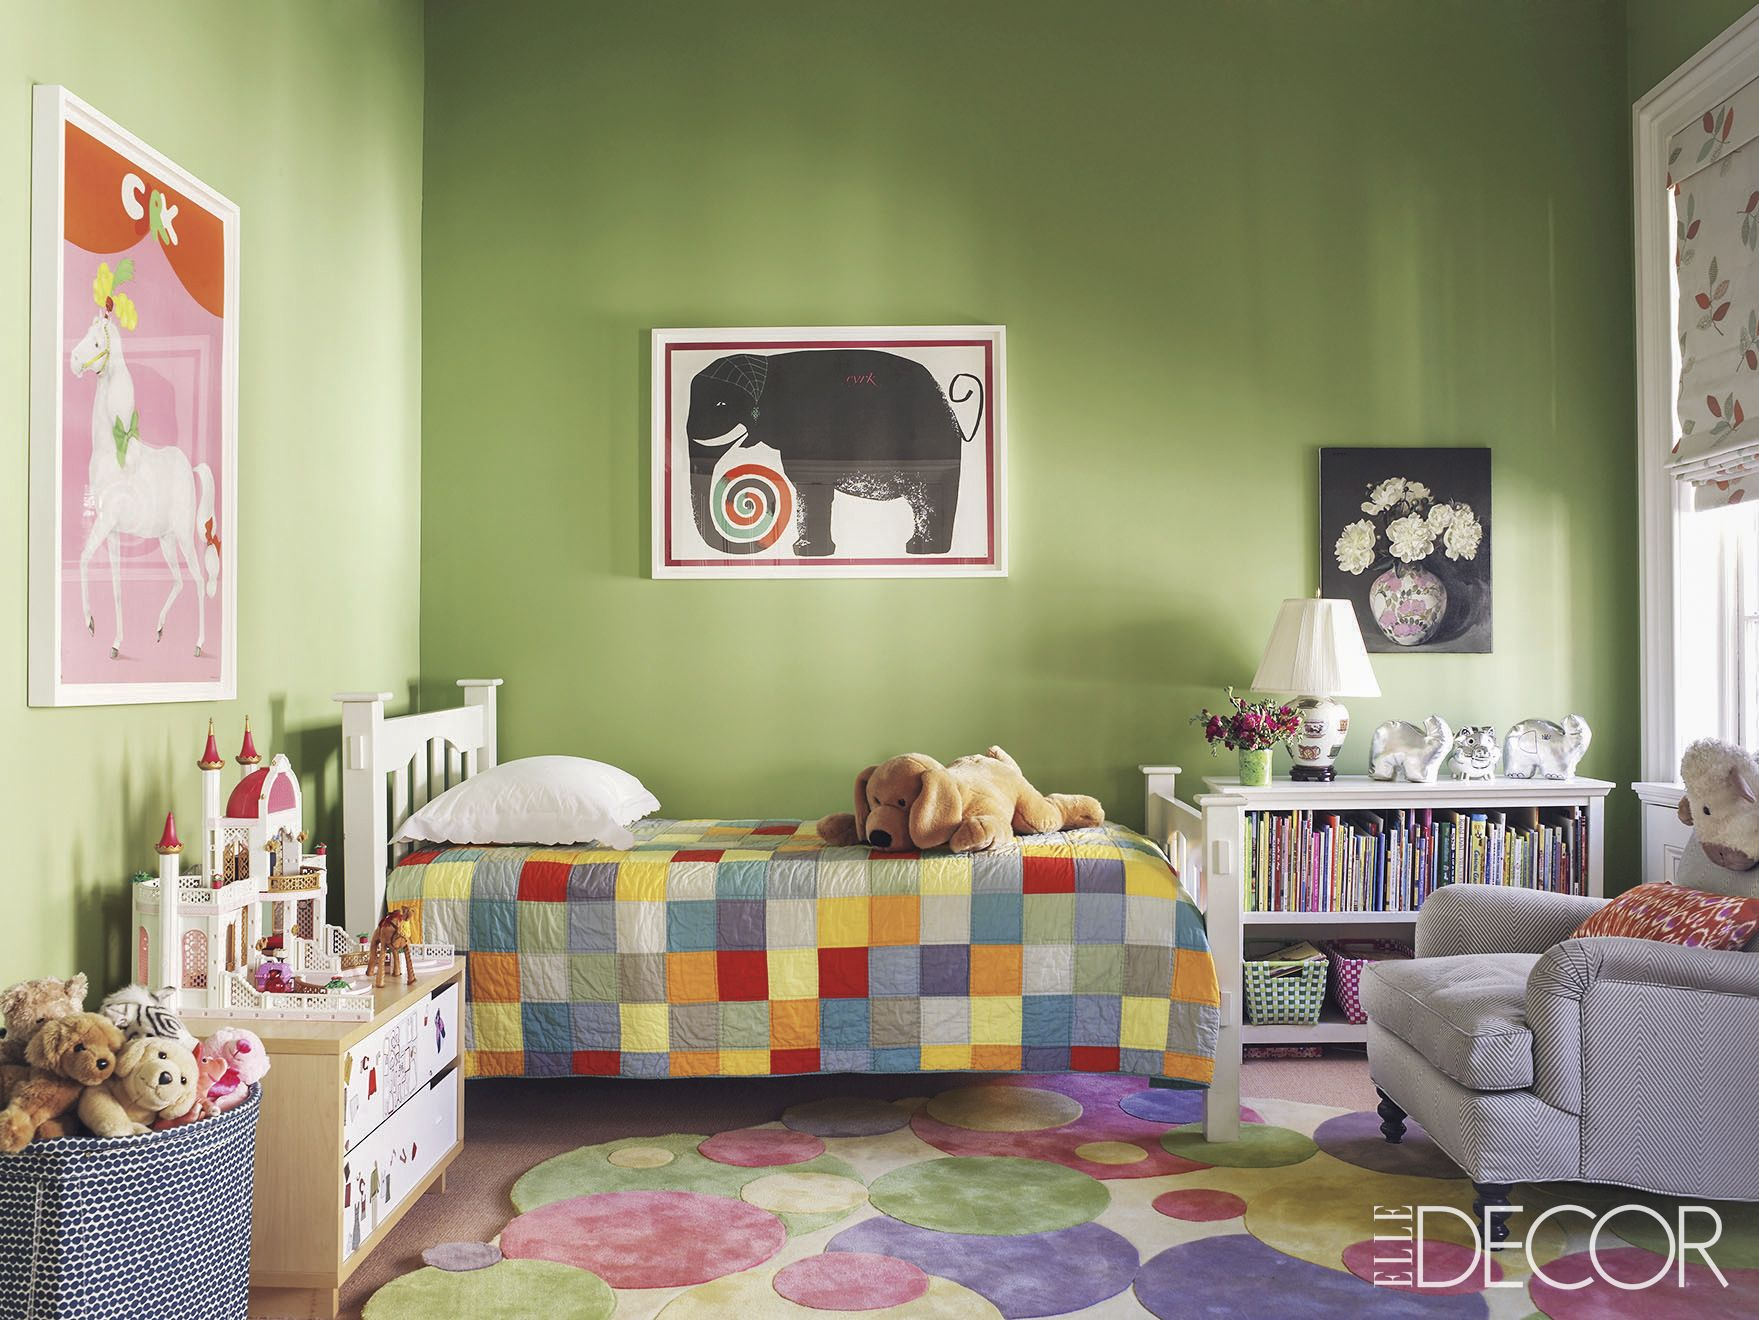 18 Cool Kids  Room Decorating Ideas   Kids Room Decor kids room decorating ideas